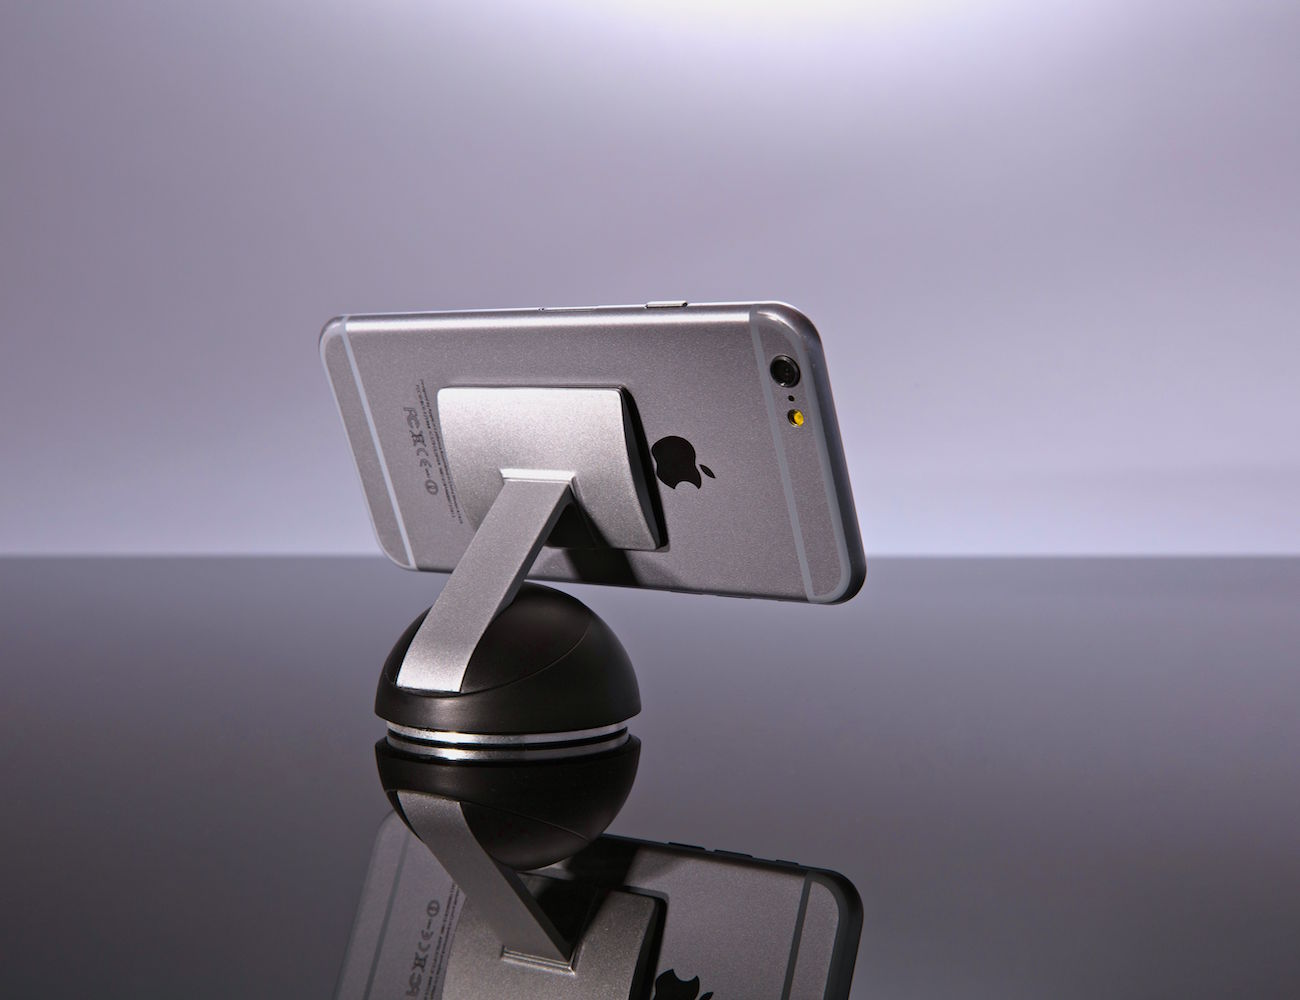 S1 360 176 Swivel Mount Microsuction Phone Dock 187 Review